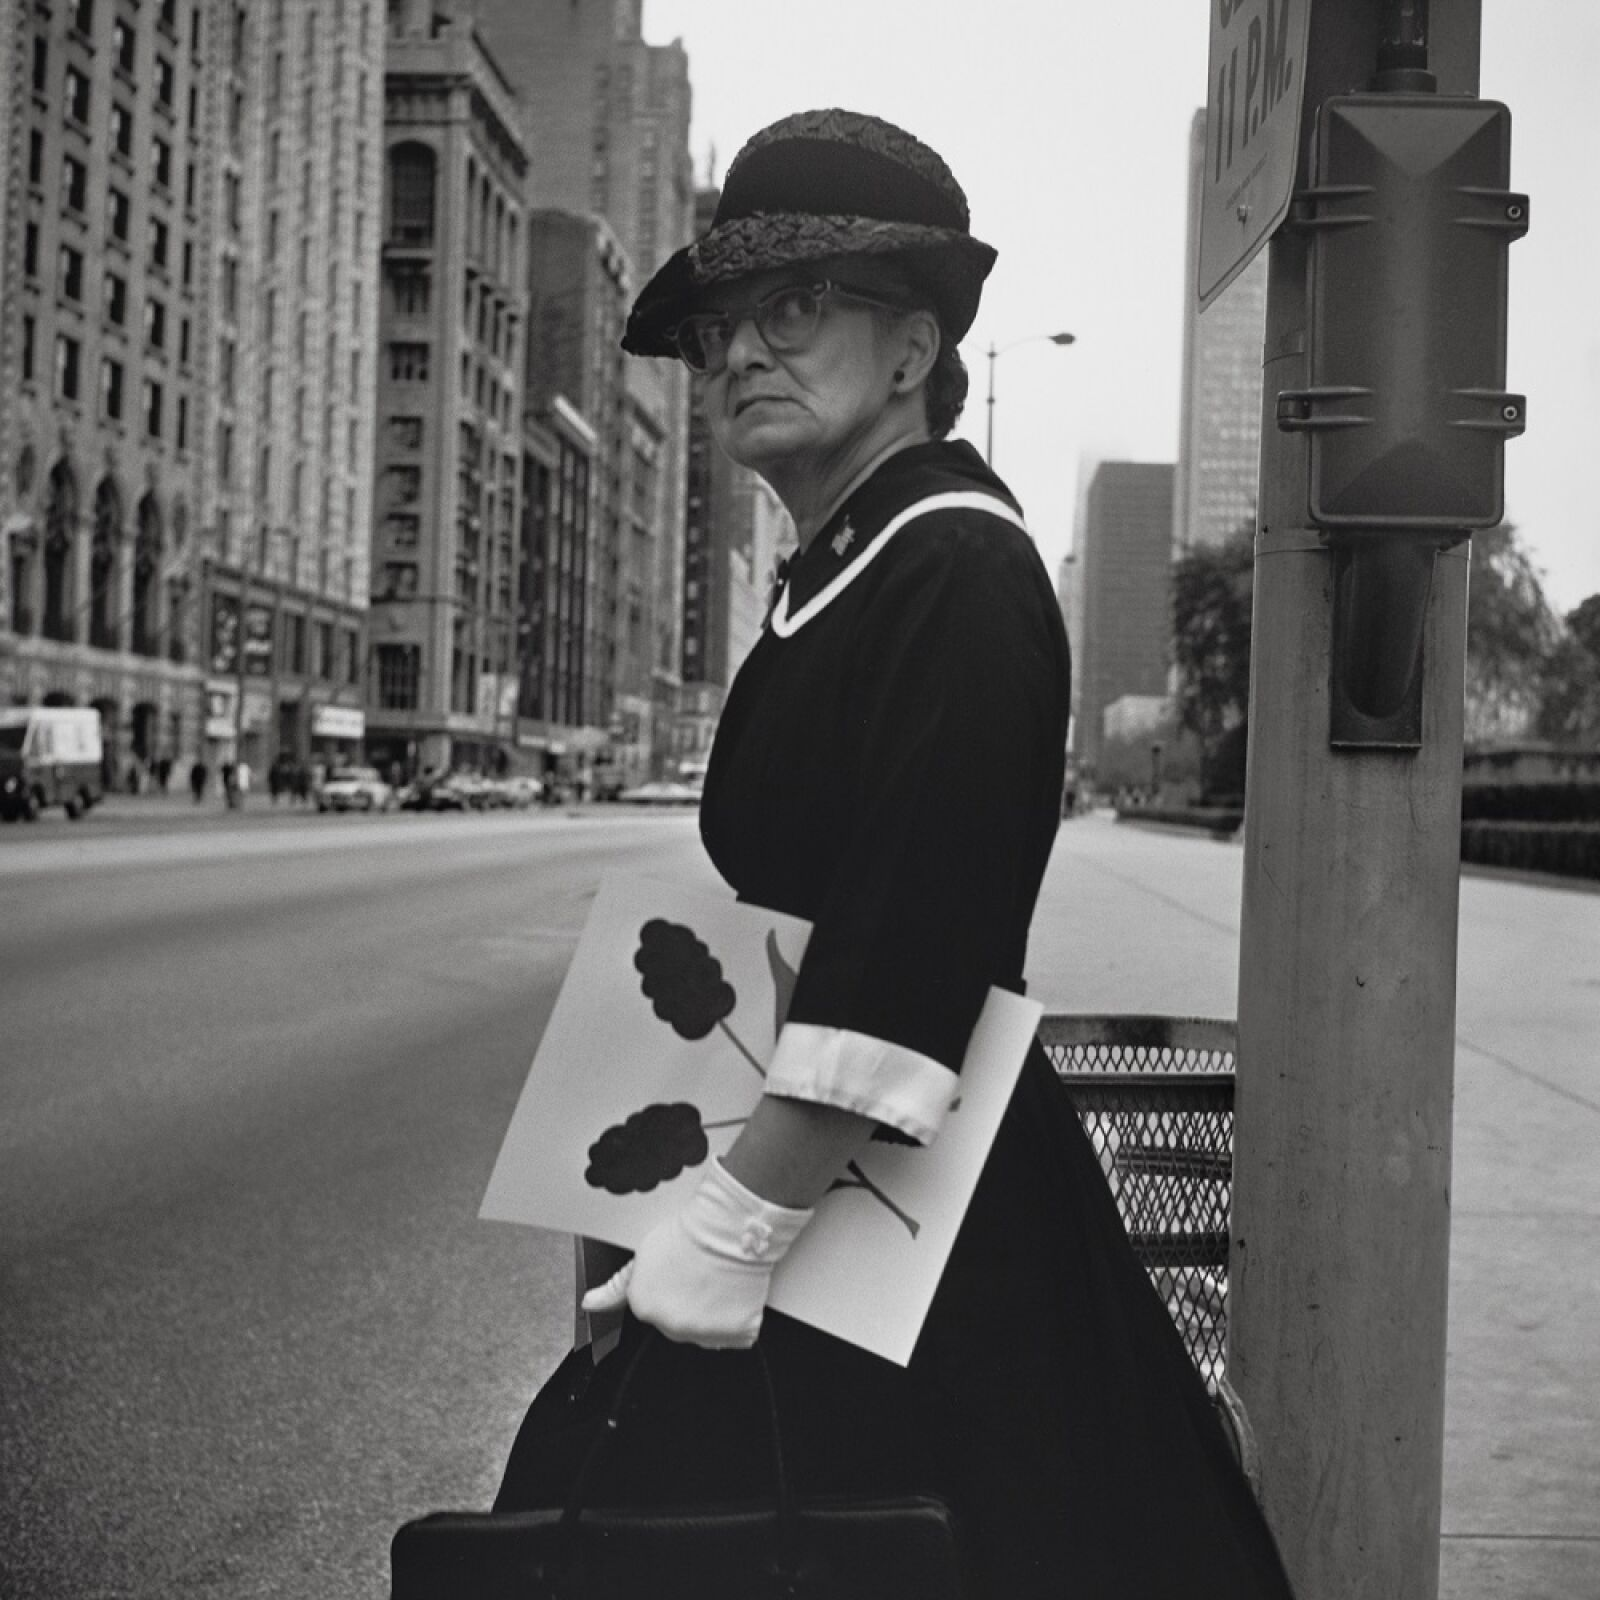 """""""Chicago, sans date"""" de Vivian MAIER © Estate of Vivian Maier, Courtesy of Maloof Collection and Howard Greenberg Gallery, NY"""